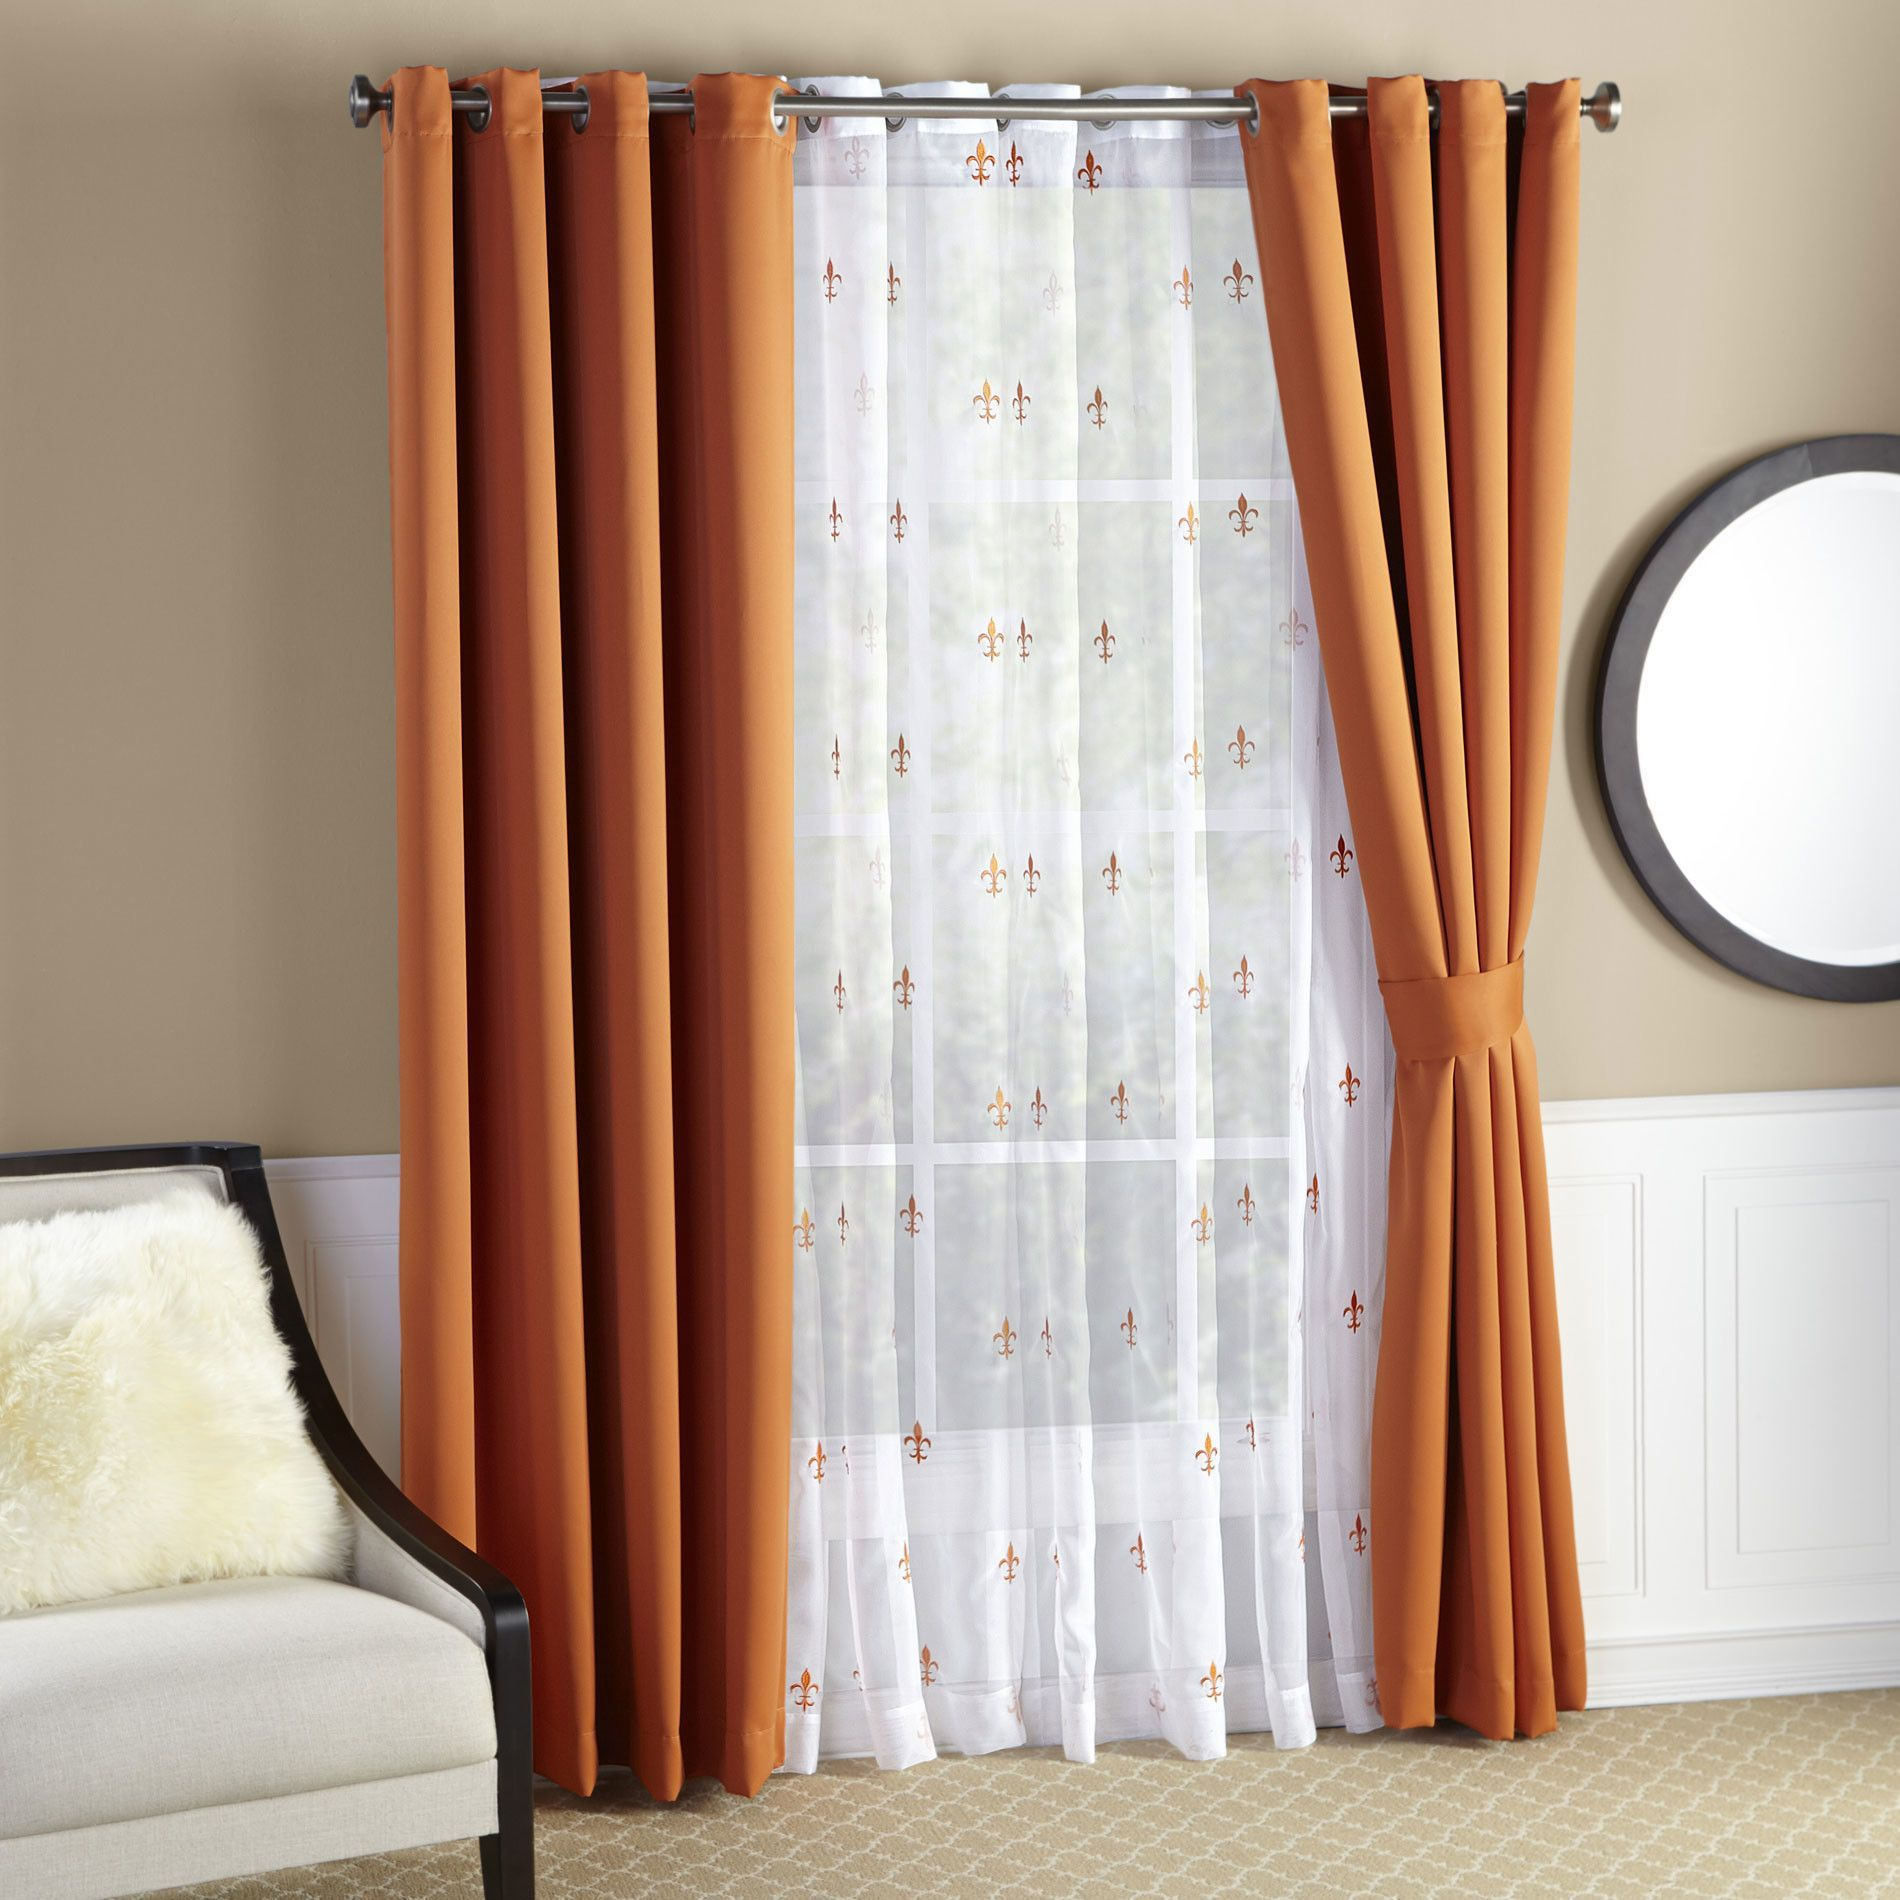 Grommet Curtains, Insulated